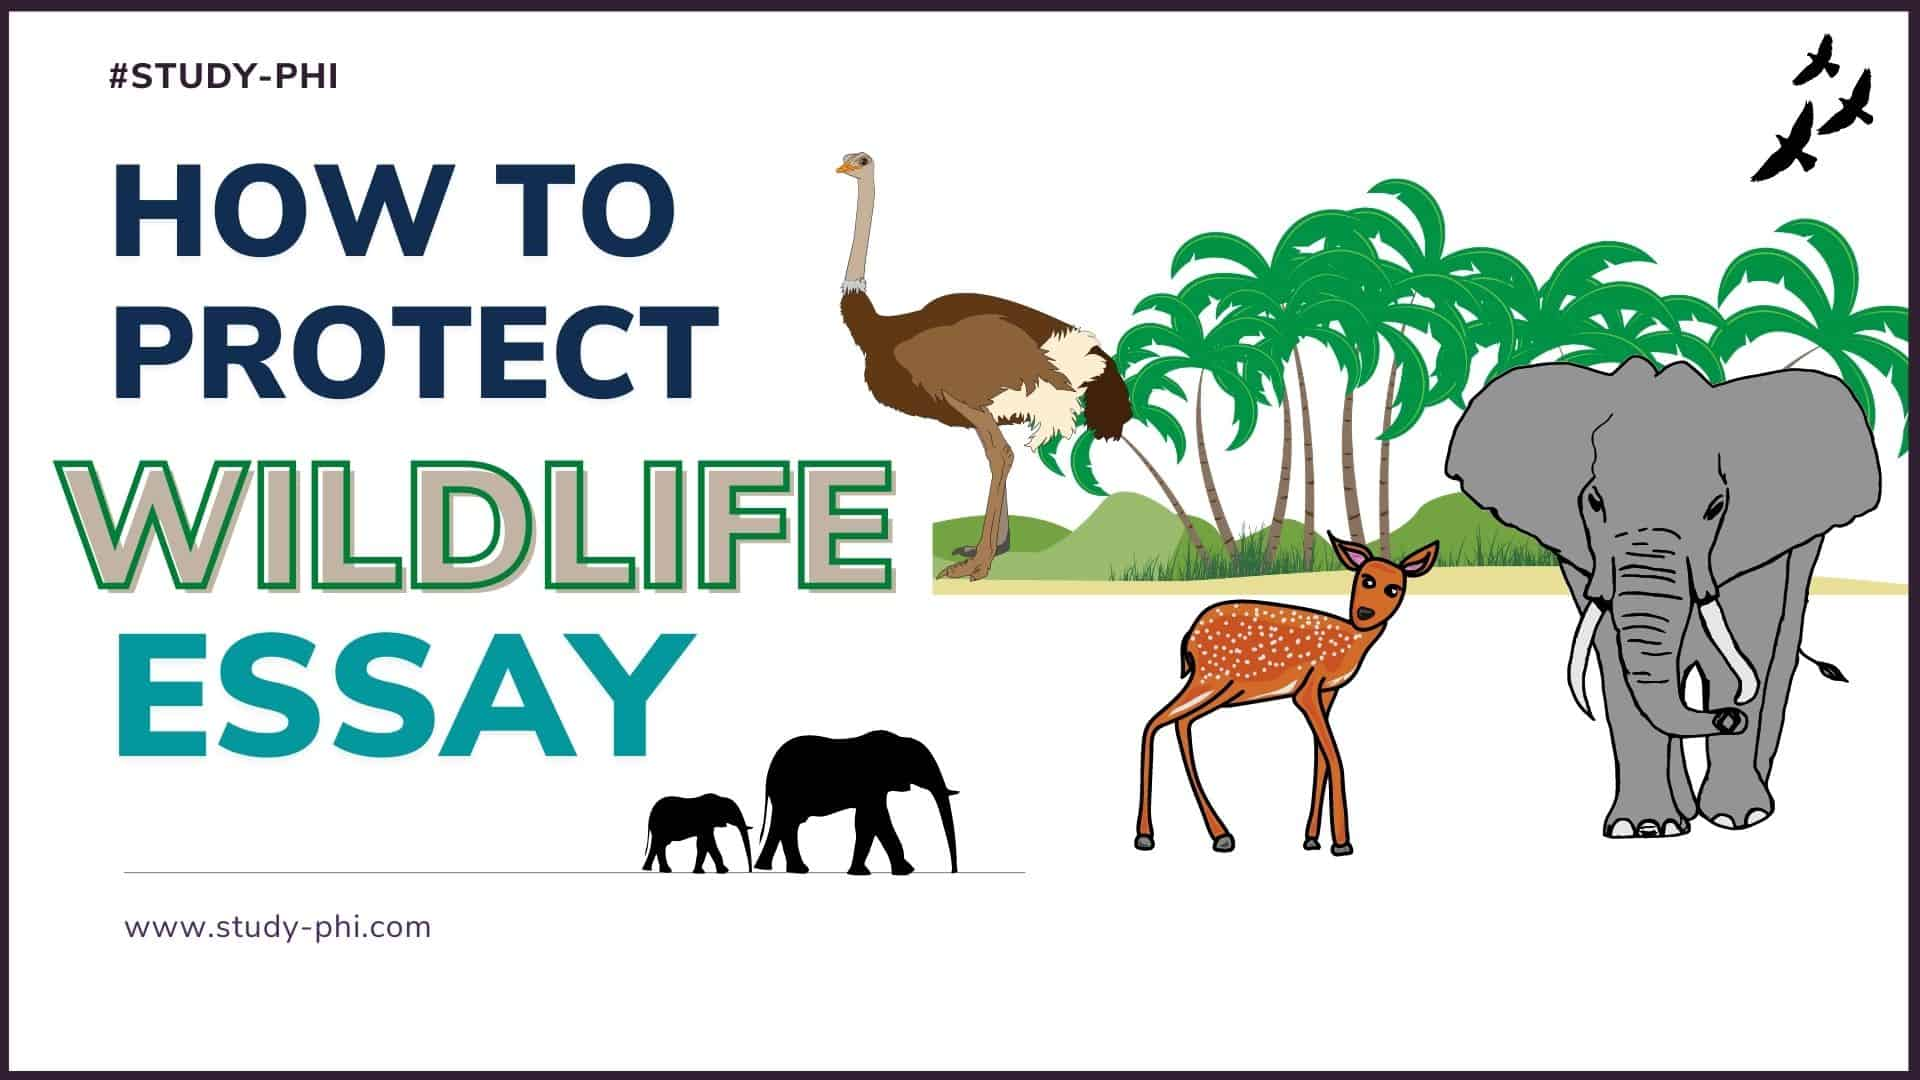 How to Protect Wildlife Essay